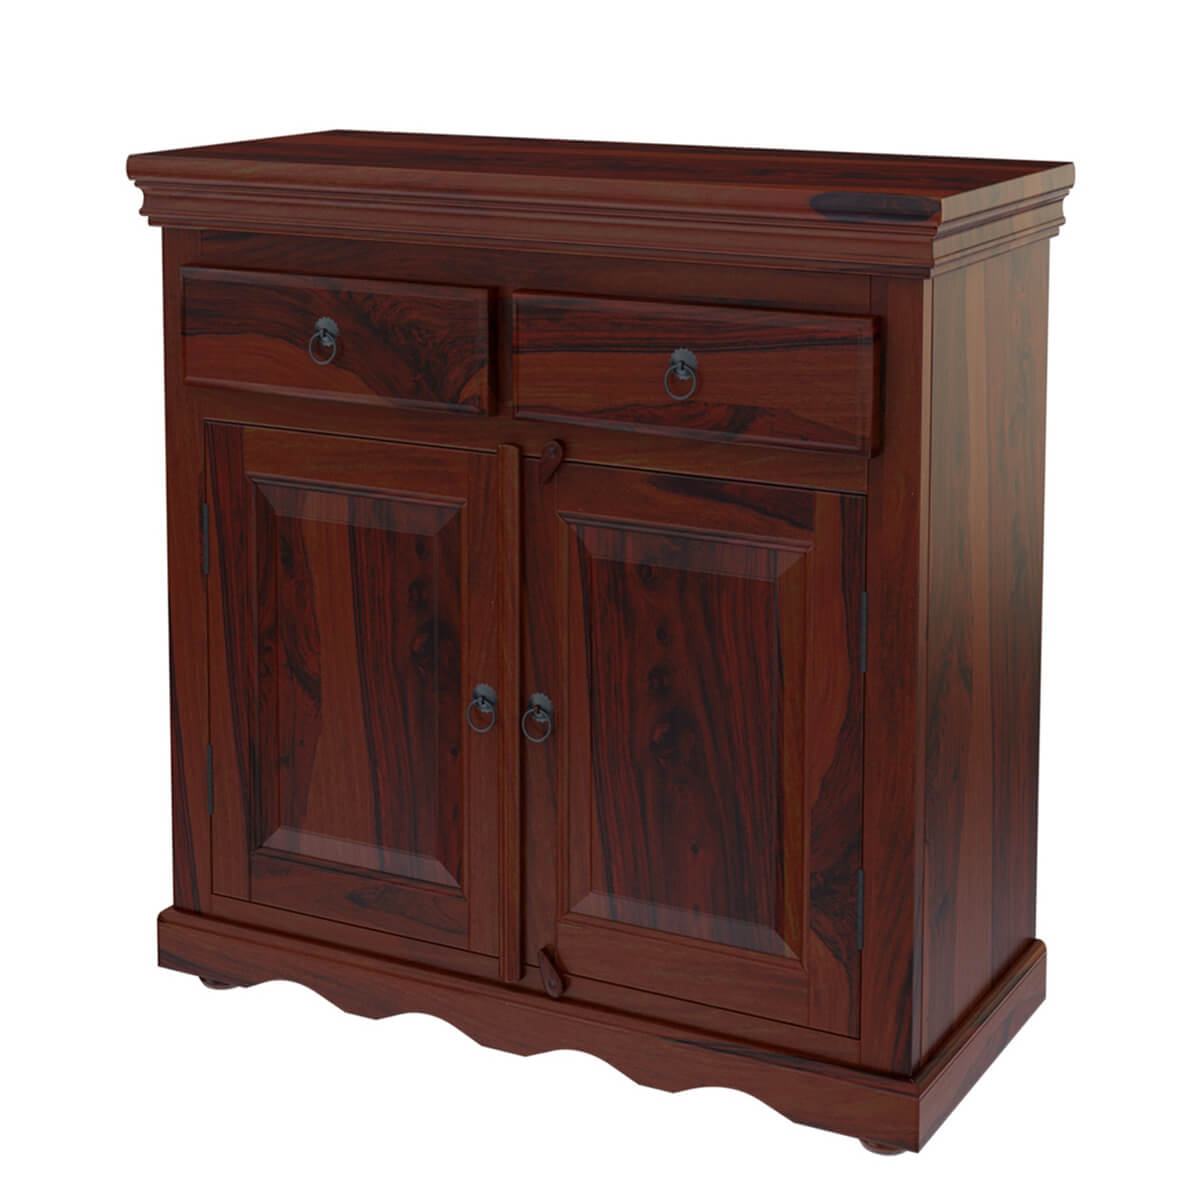 Tampa Kitchen Cabinets: Tampa Rustic Solid Wood Handmade 2 Drawer Buffet Cabinet